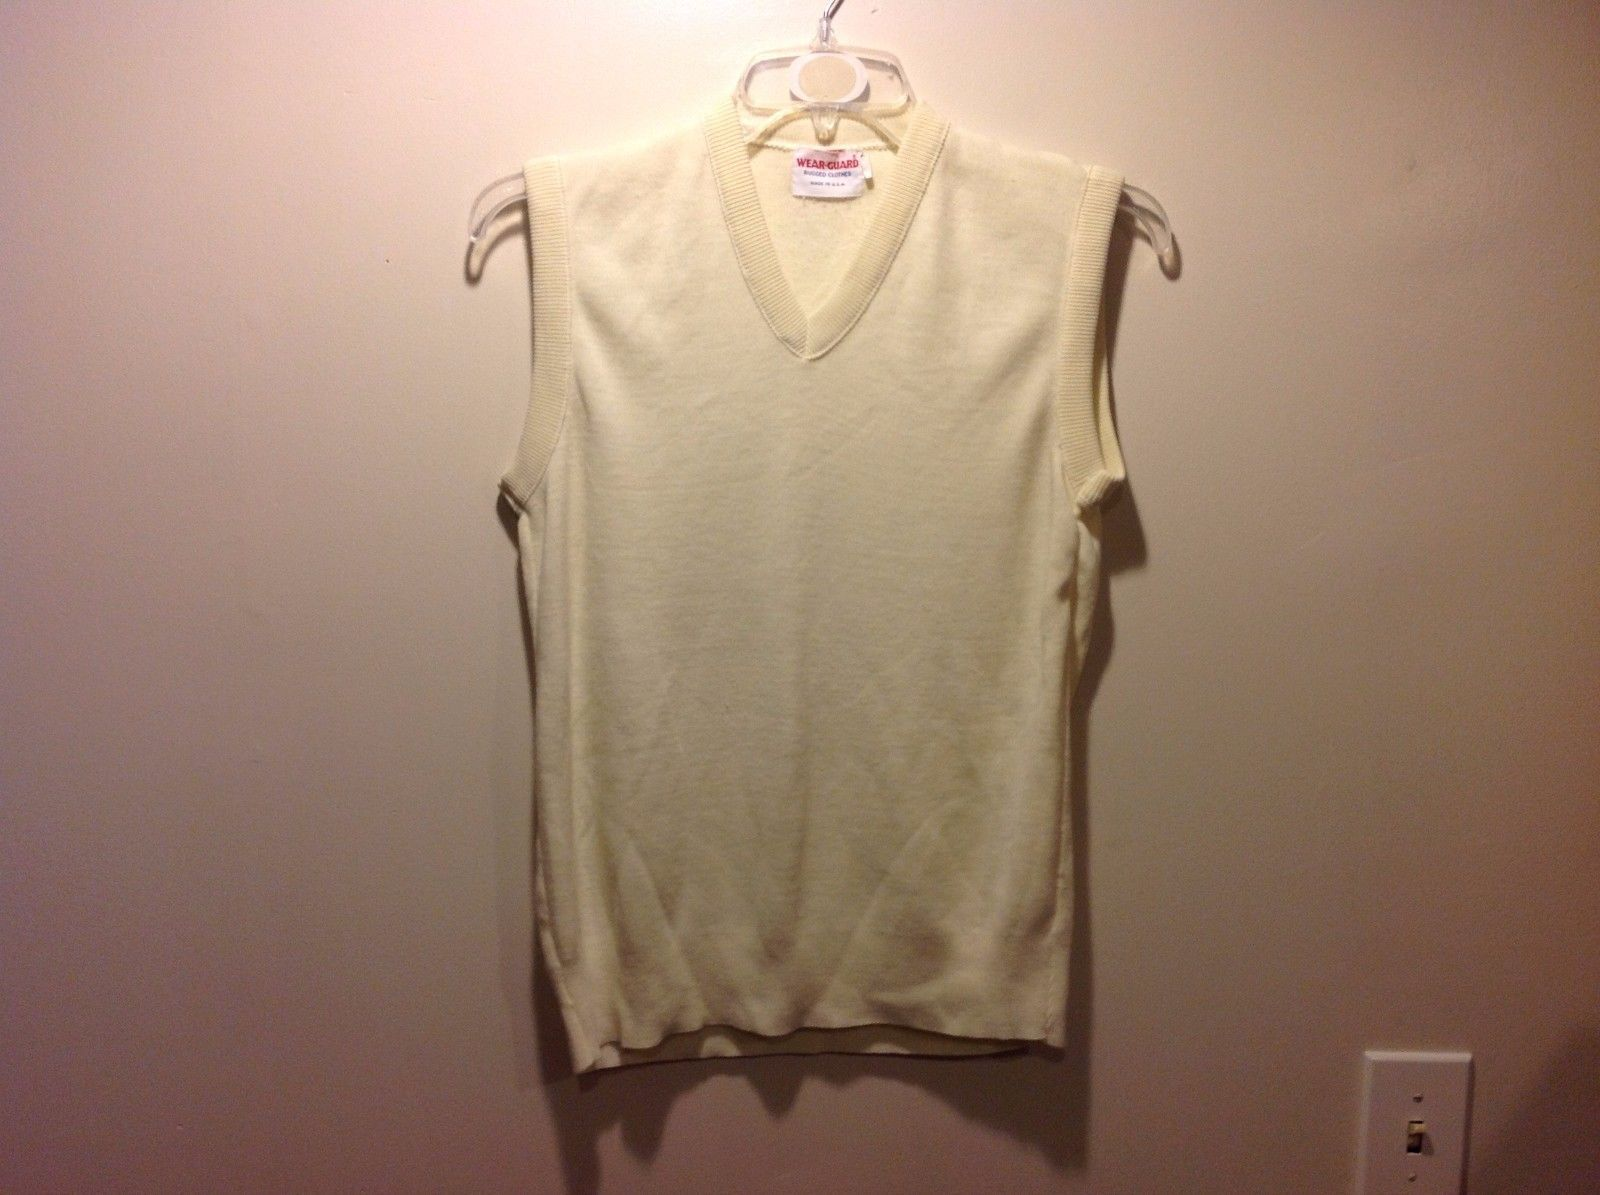 Wearguard Pale Pastel Lemon Yellow V Neck Sweater Vest Size Medium